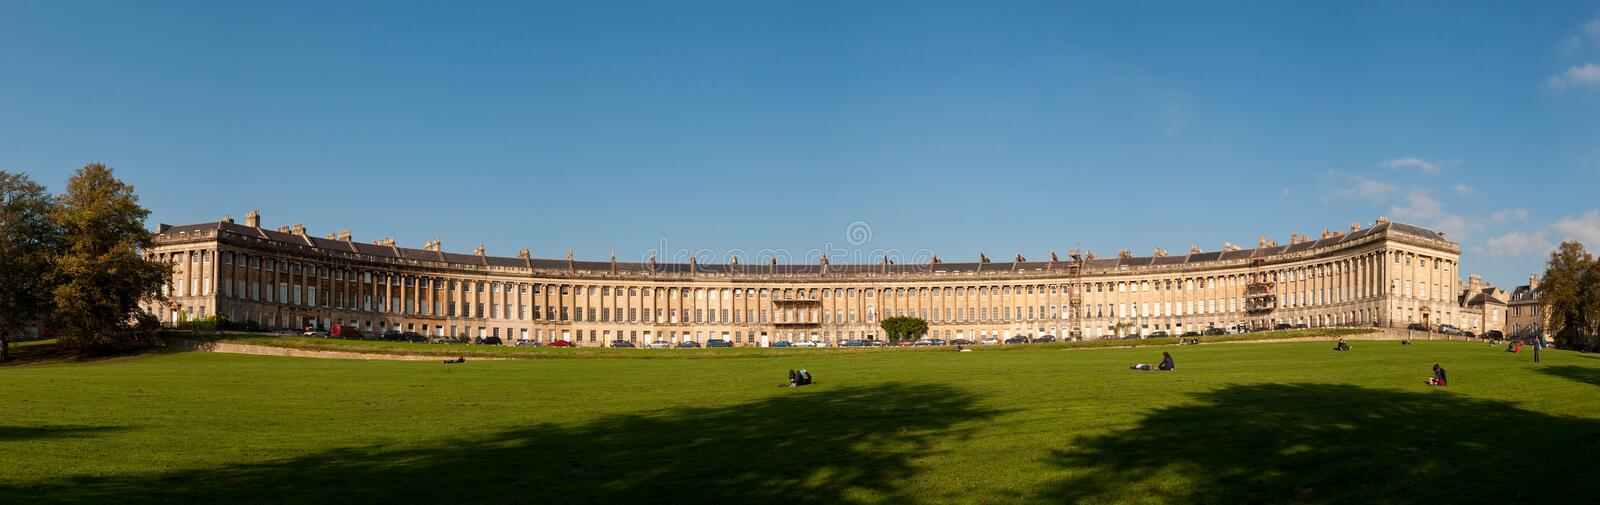 The Royal Crescent in Bath, UK royalty free stock photos